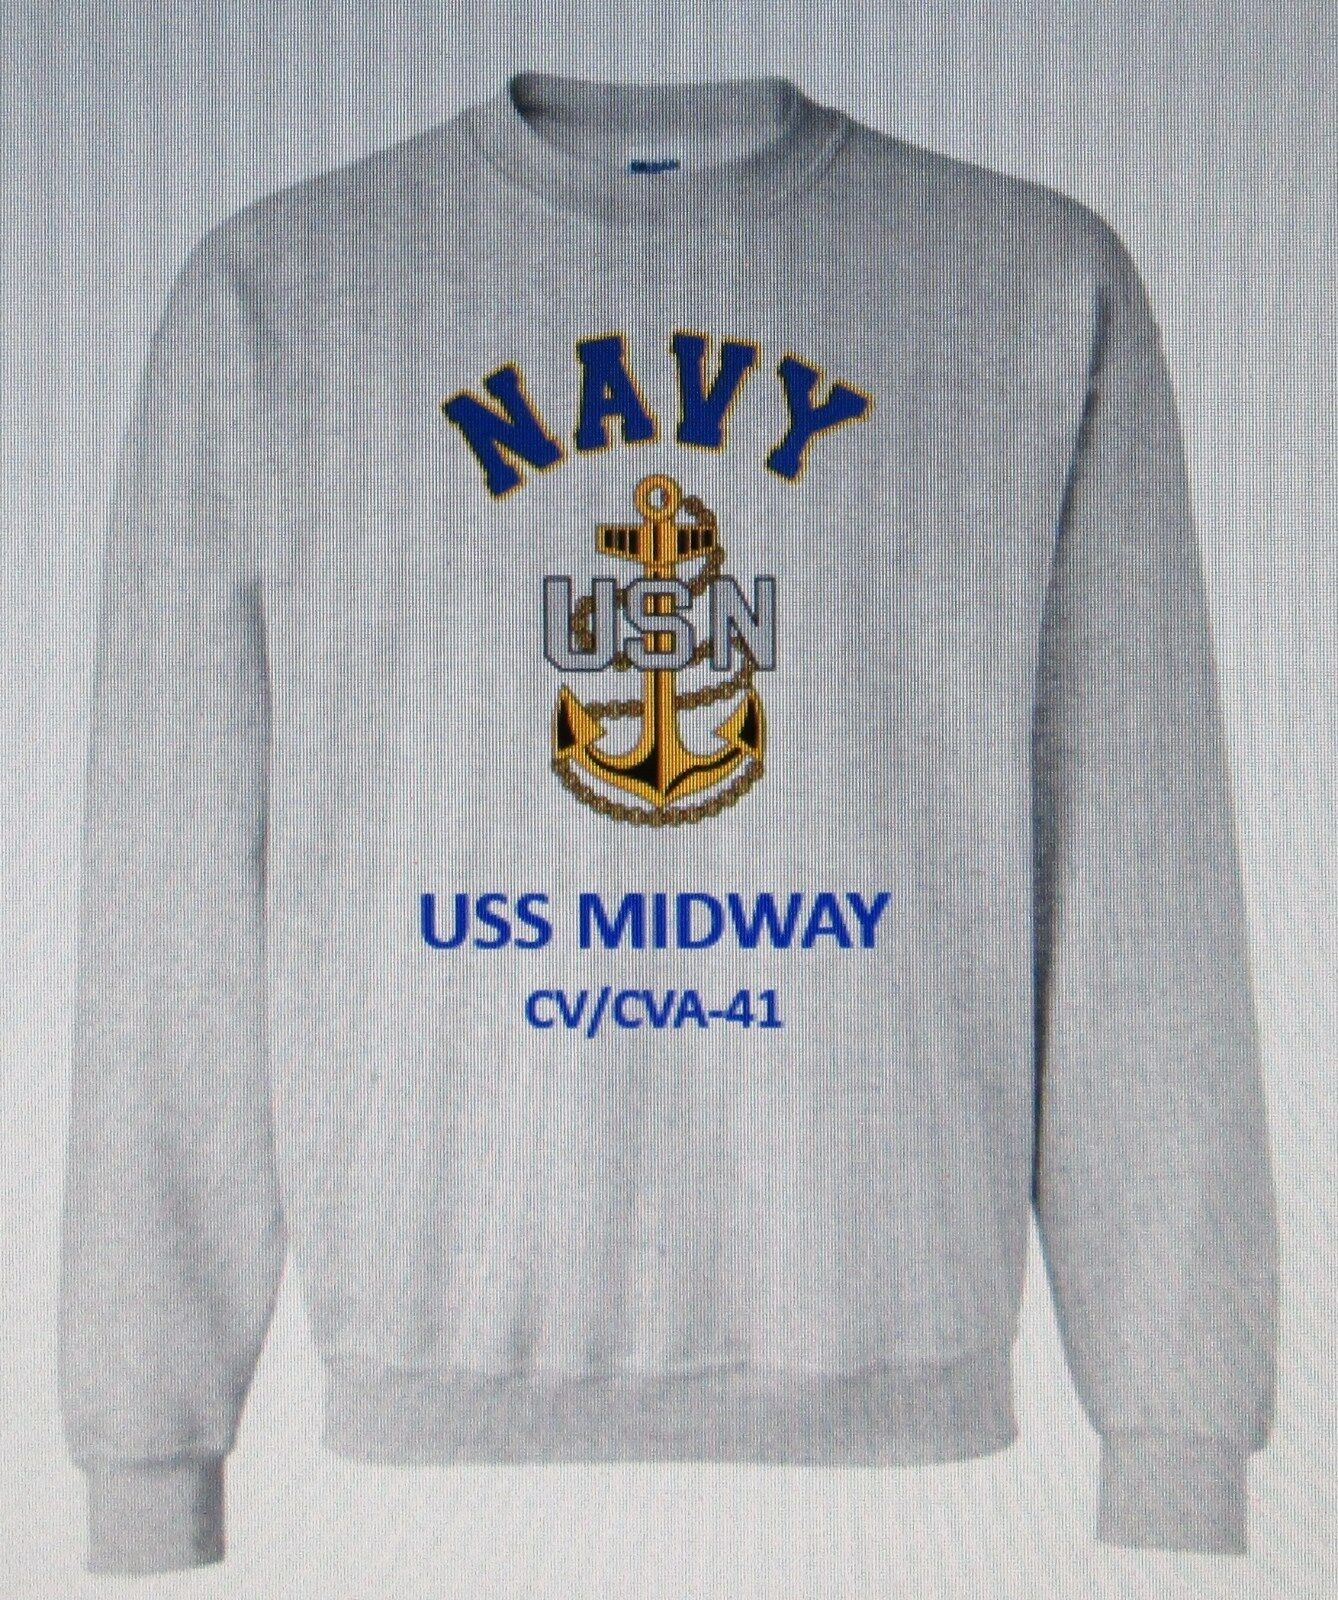 USS MIDWAY  CV/CVA-41 AIRCRAFT CARRIER NAVY ANCHOR EMBLEM SWEATSHIRT